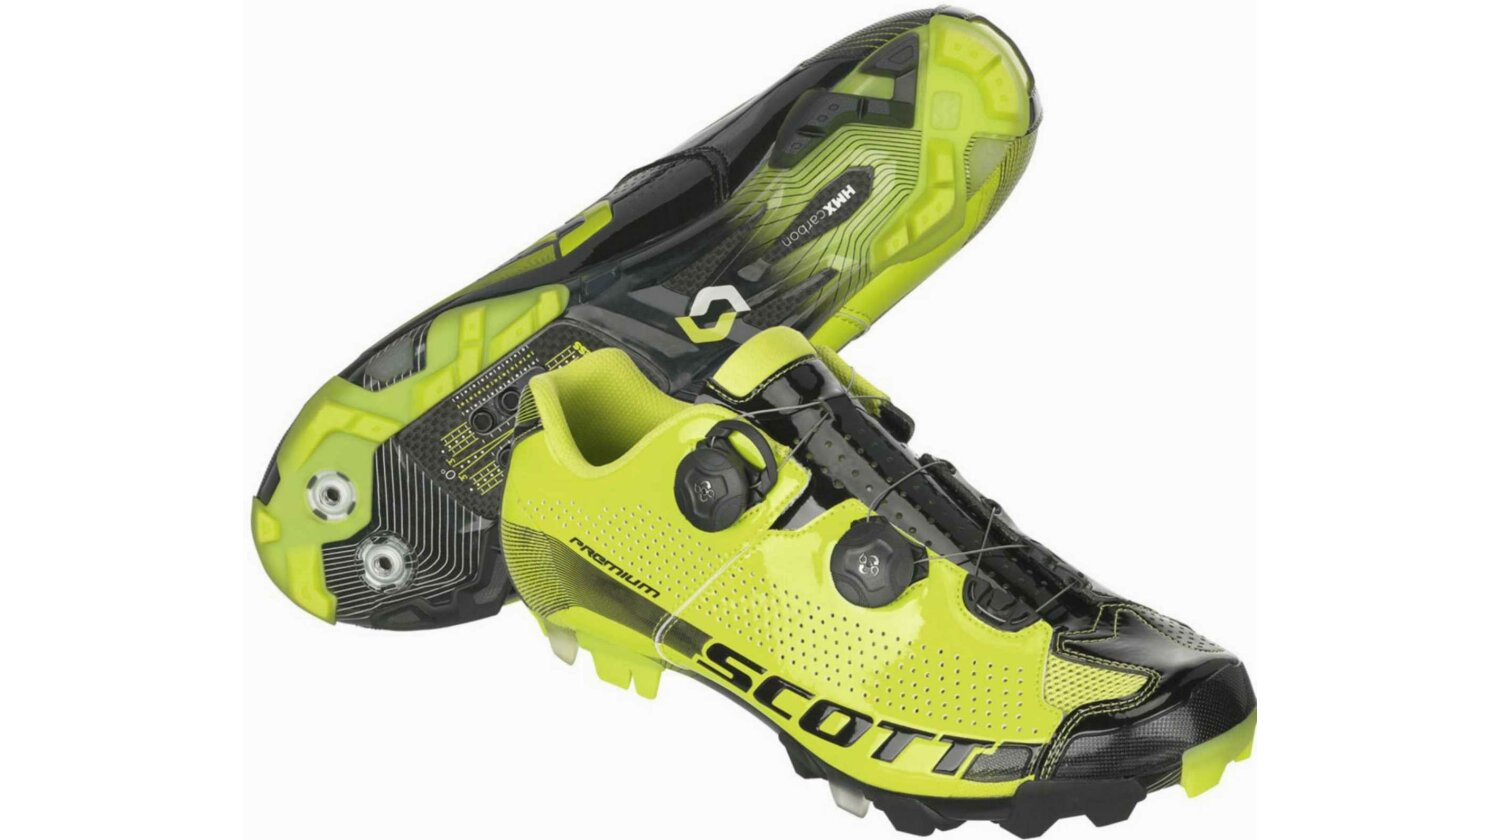 Scott MTB Premium Schuh green/black gloss 40